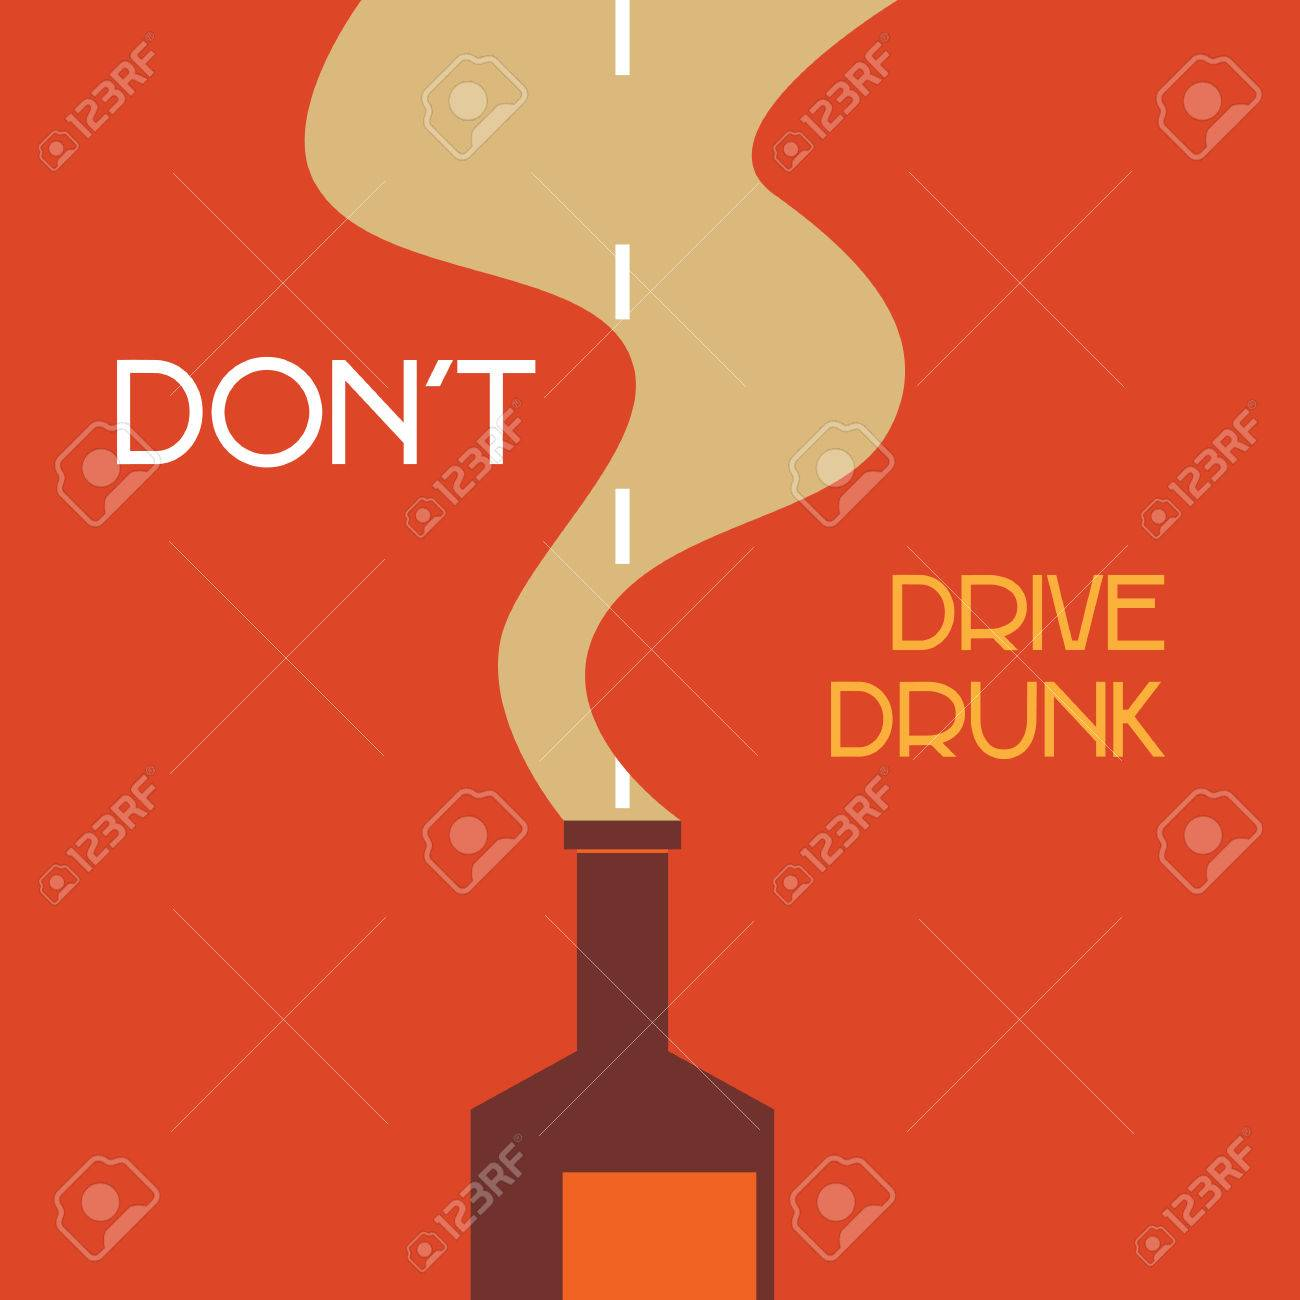 don't drive drunk Stock Vector - 23864381